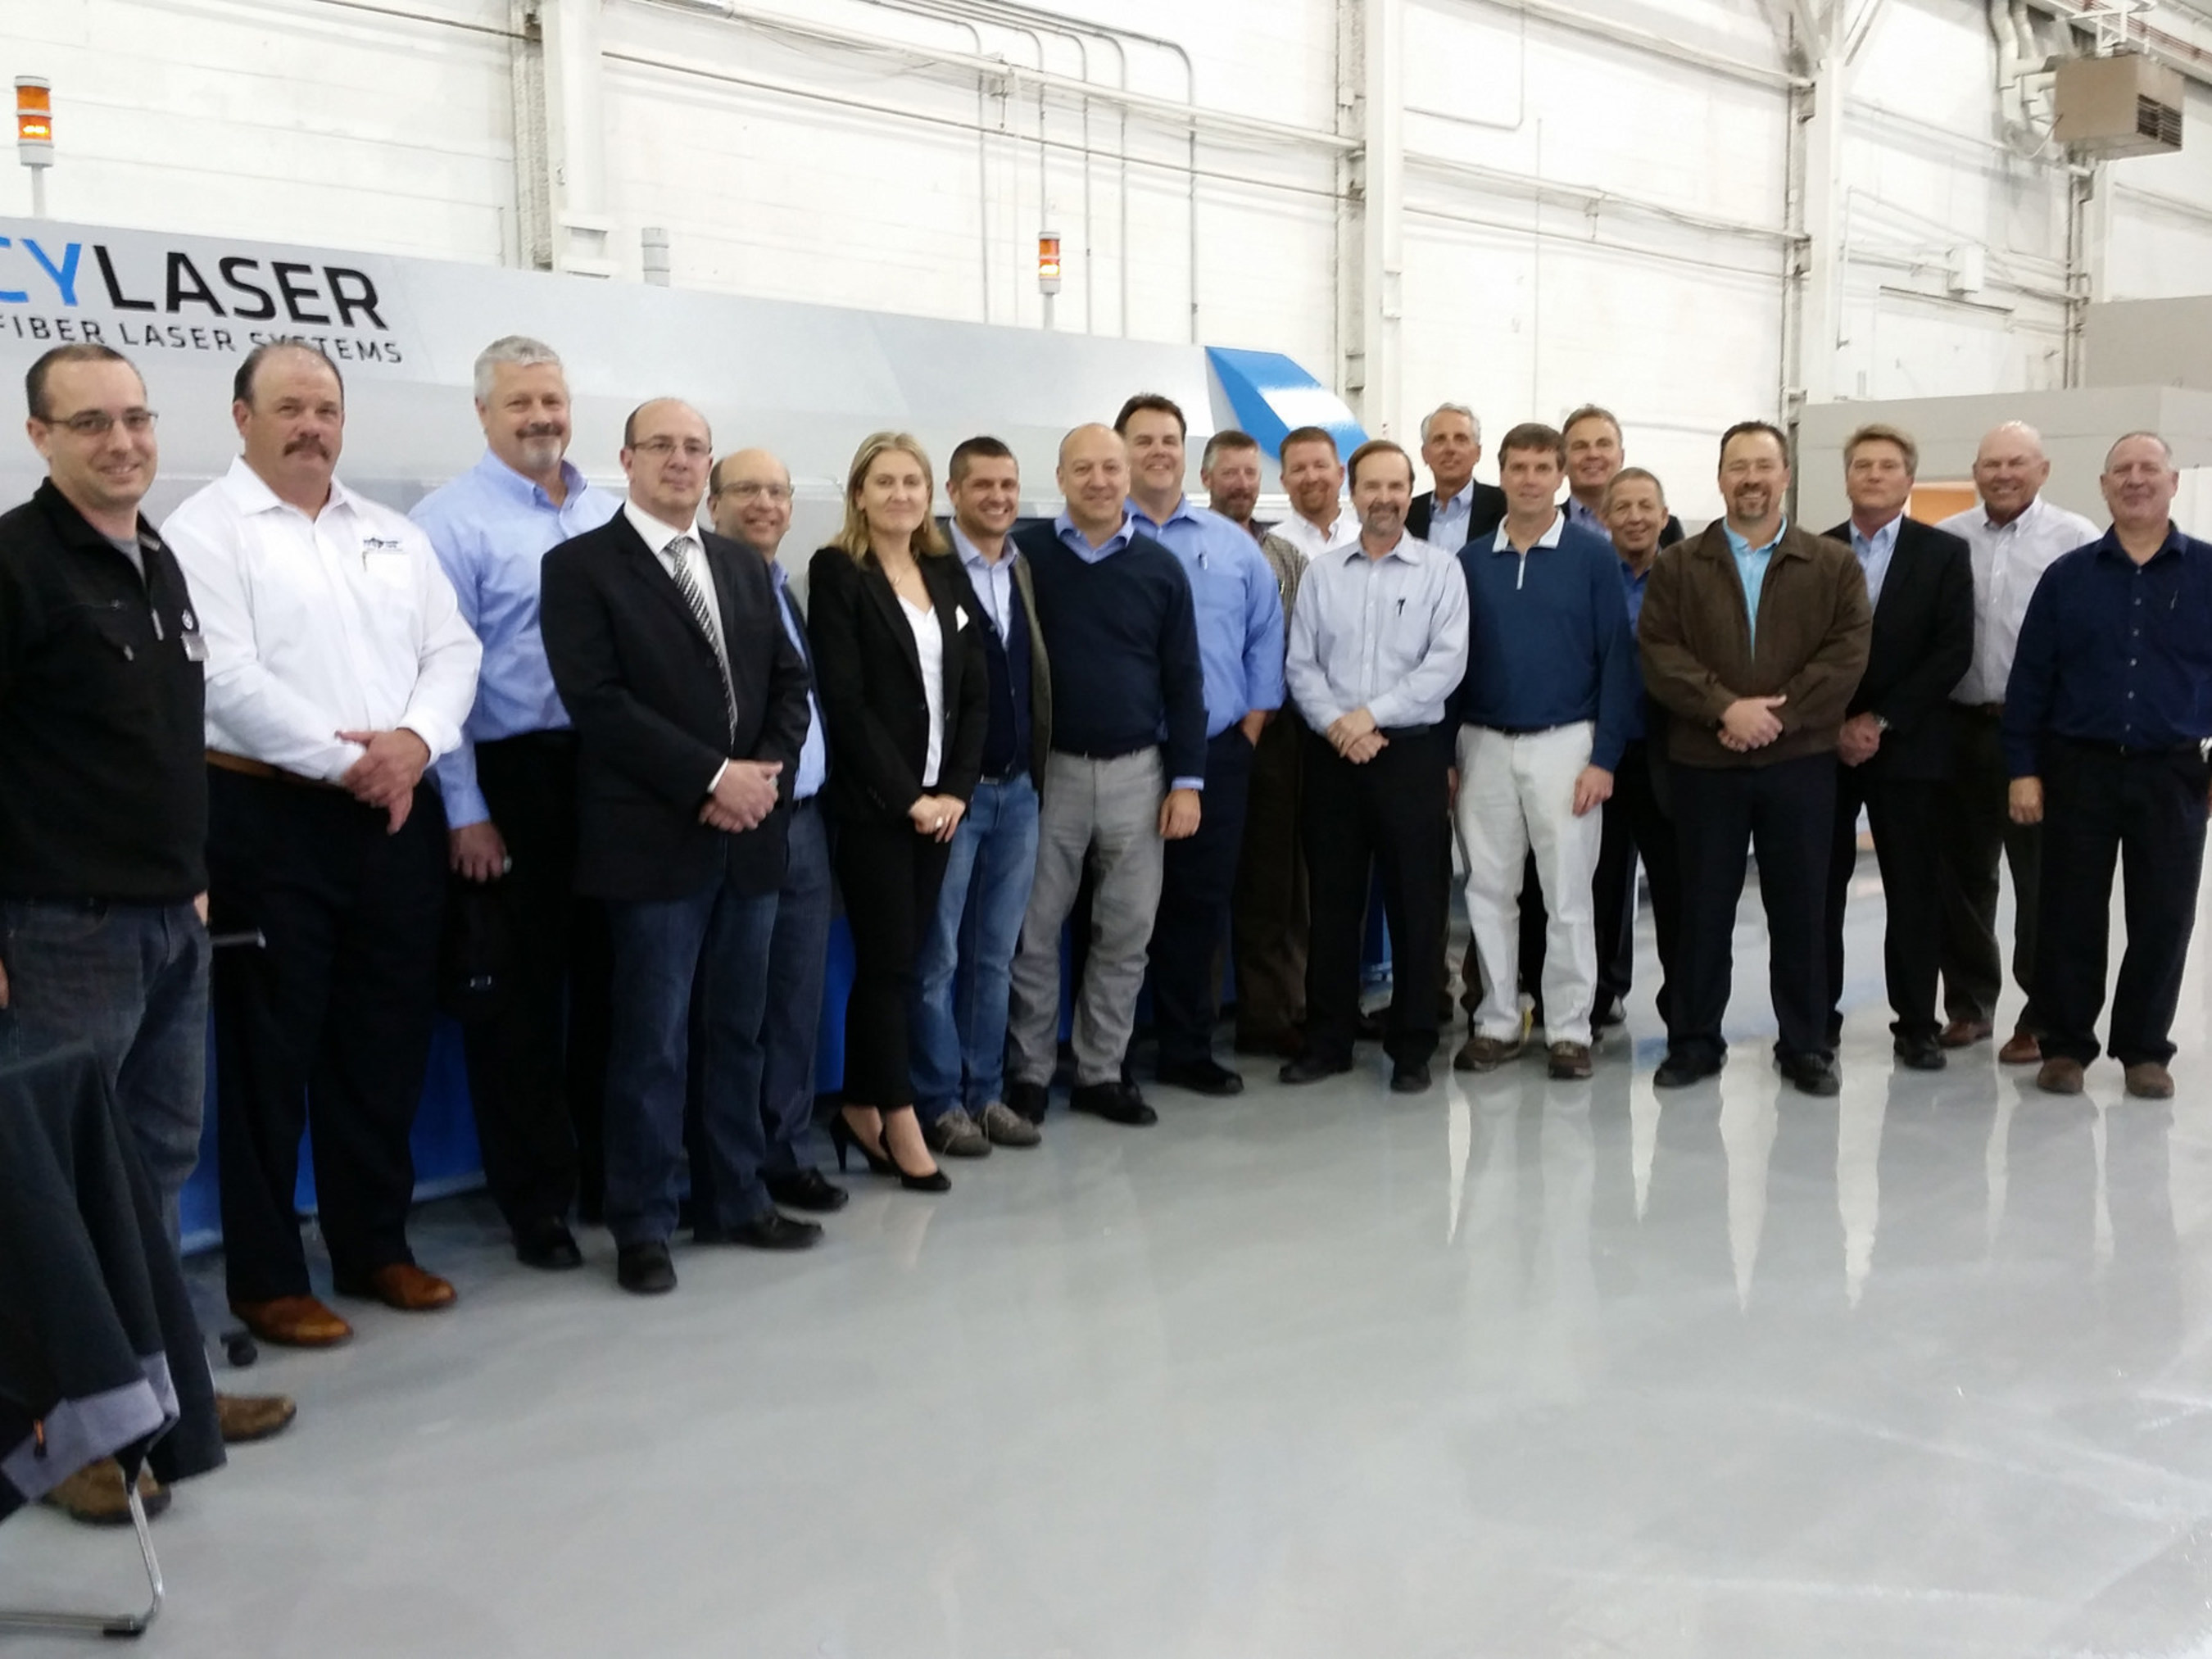 Cy-Laser America Dedicates New Technology Center and Showroom in Metropolitan Detroit